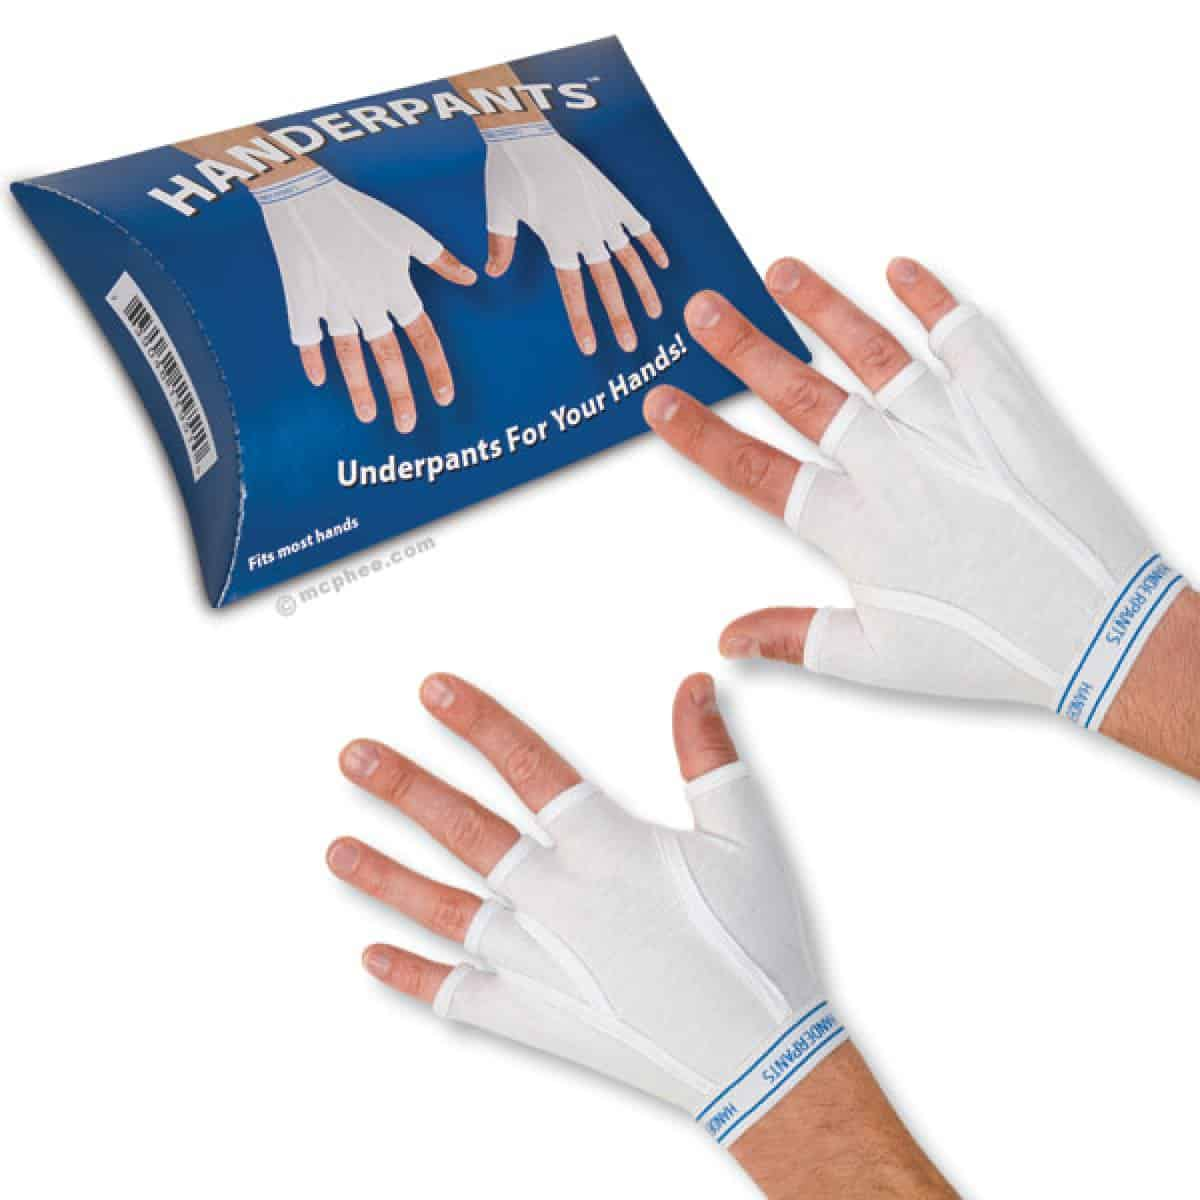 Handerpants Underwear Gloves Buy a Cool Novelty Item